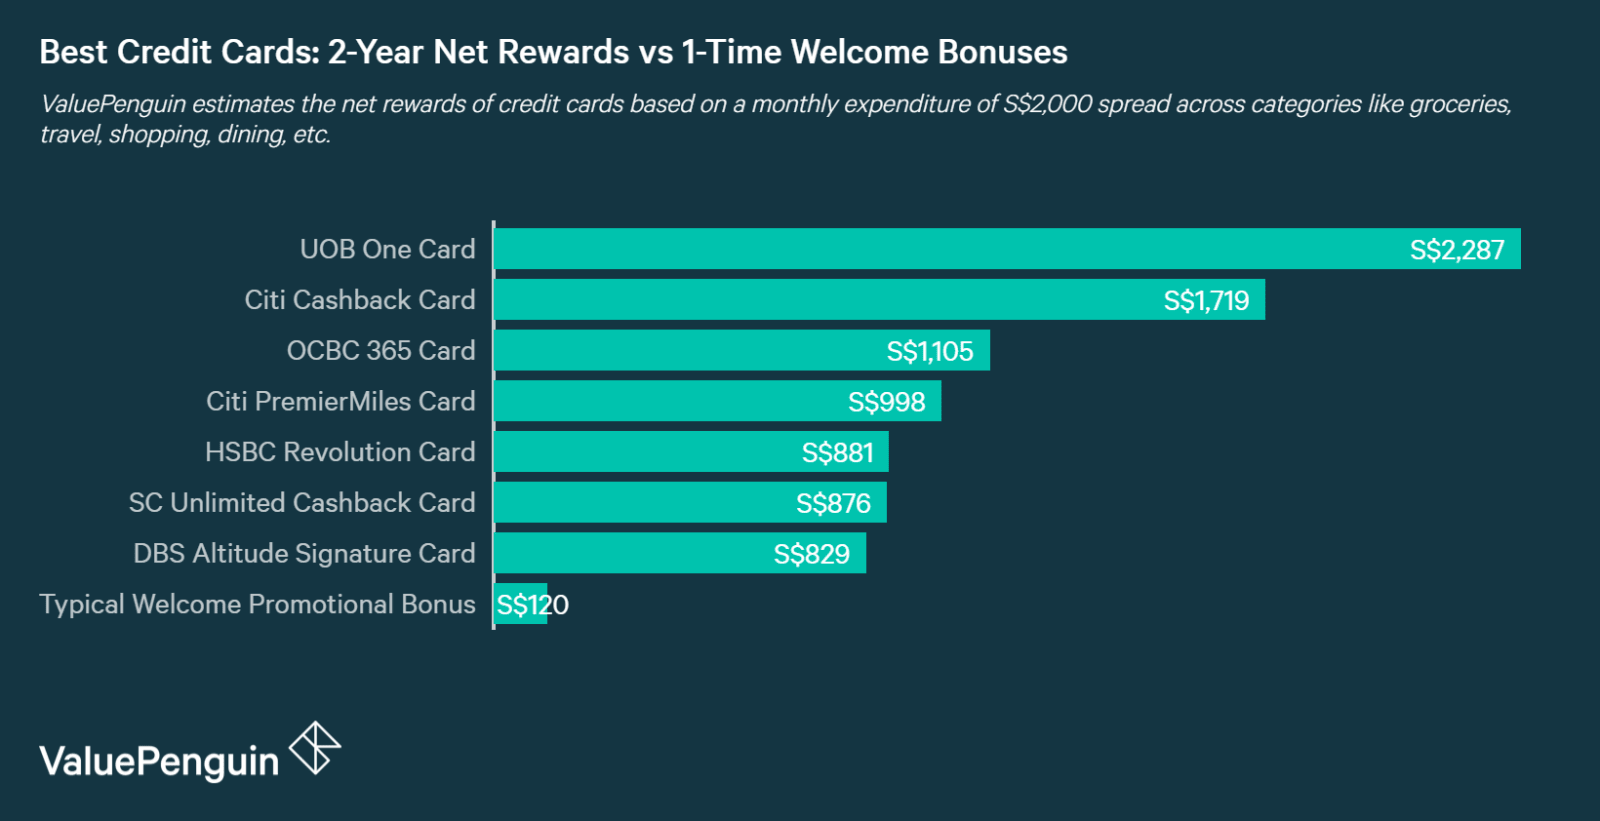 The amount of rewards one by using the right credit card over 2 years far outweighs  short-term promotional benefits